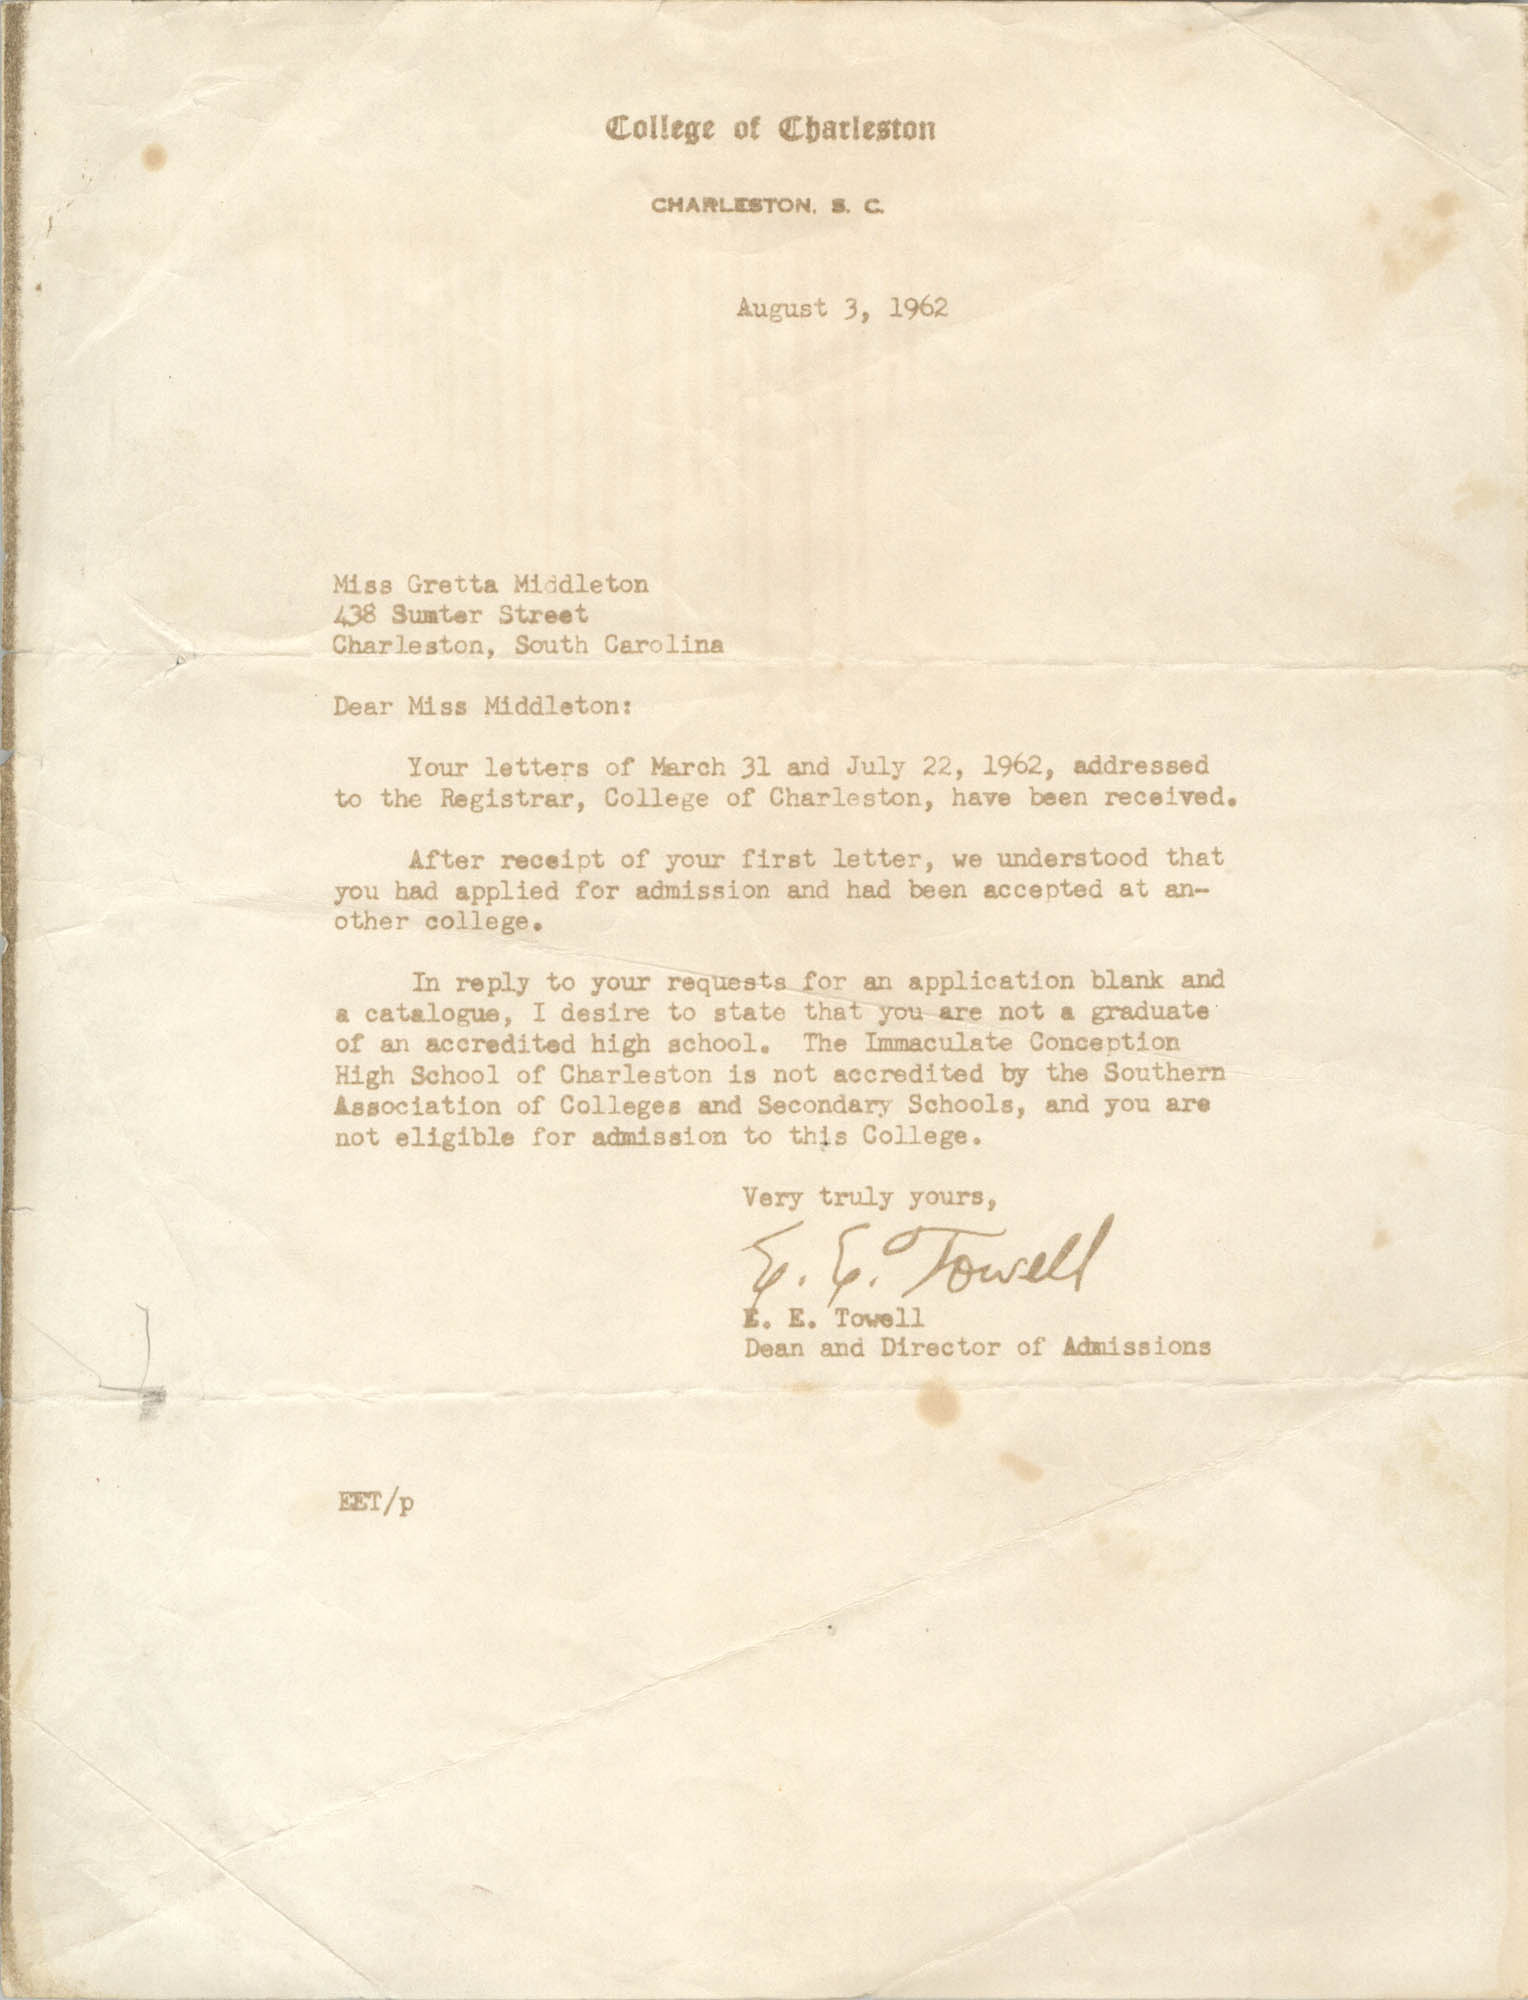 Letter from E. E. Towell to Gretta Middleton, August 3, 1962